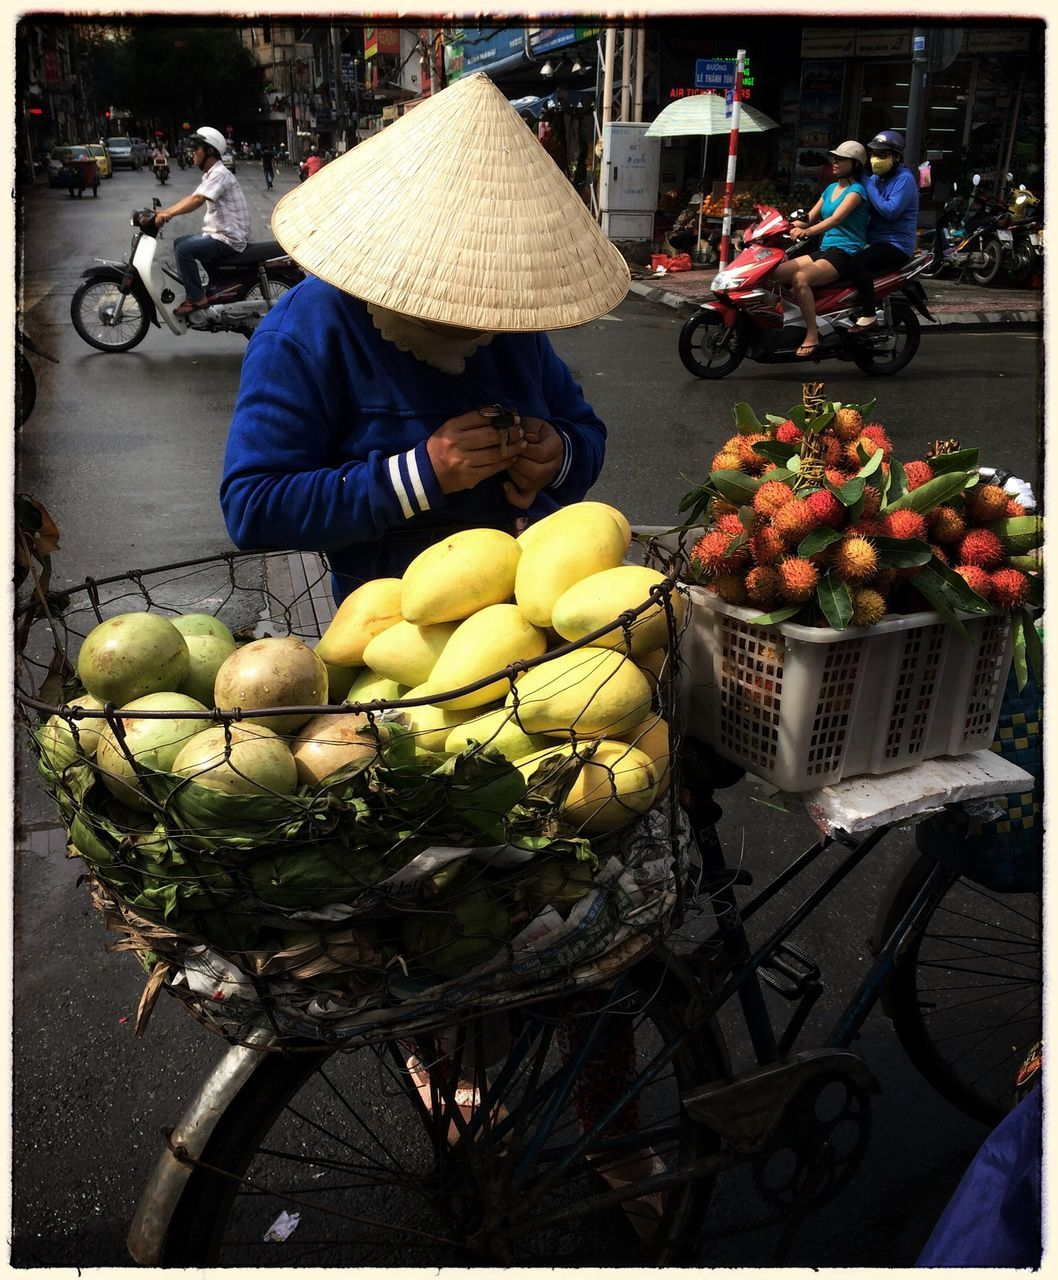 Man In Conical Hat Selling Fruits